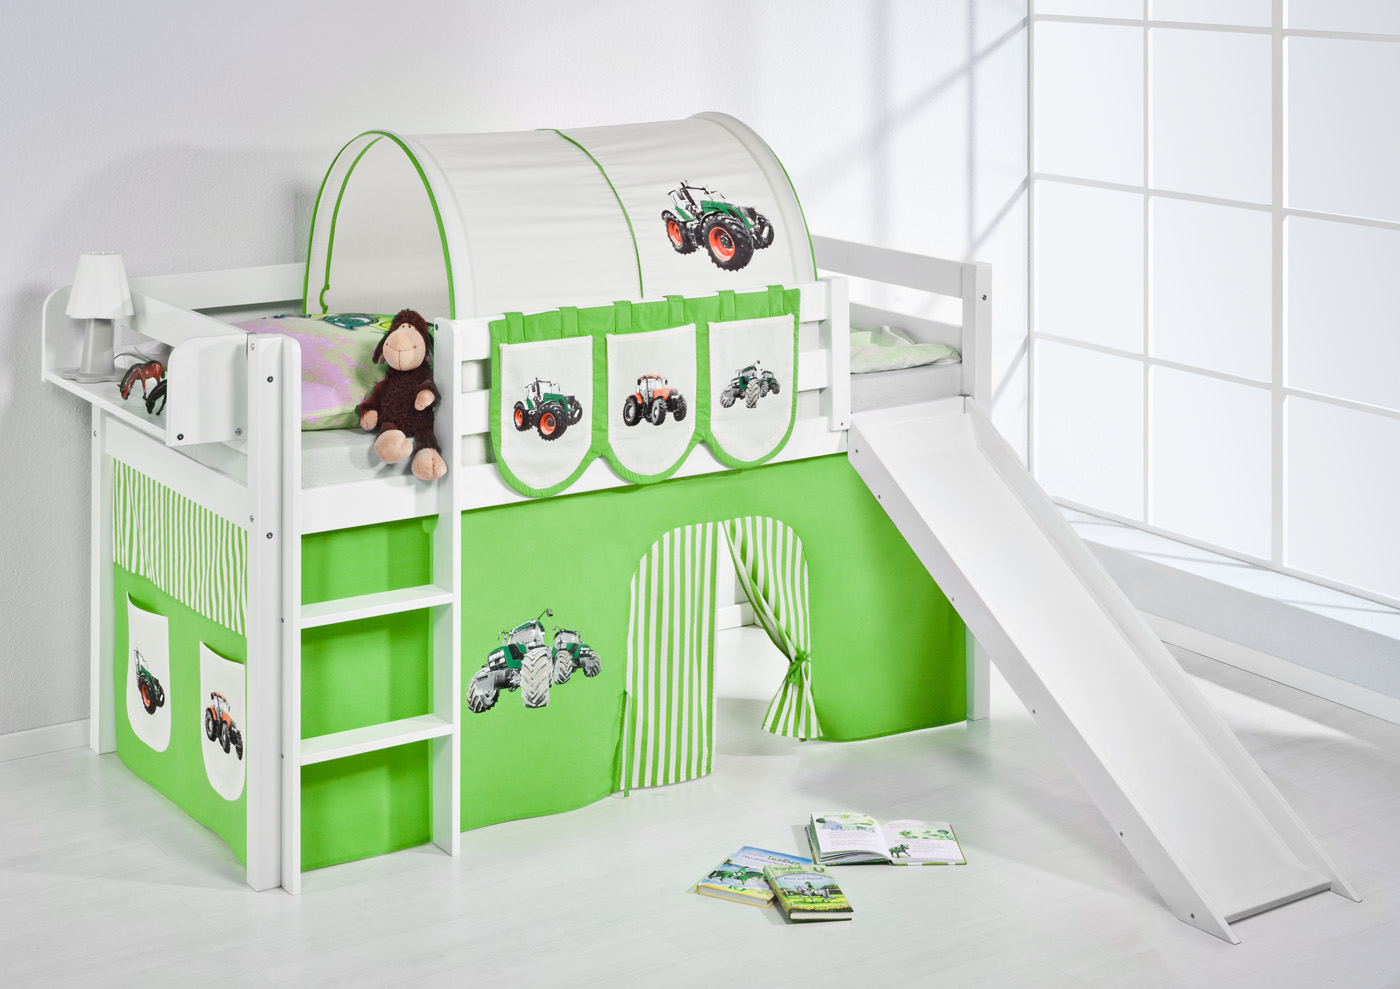 spielbett hochbett kinderbett kinder bett jelle mit. Black Bedroom Furniture Sets. Home Design Ideas